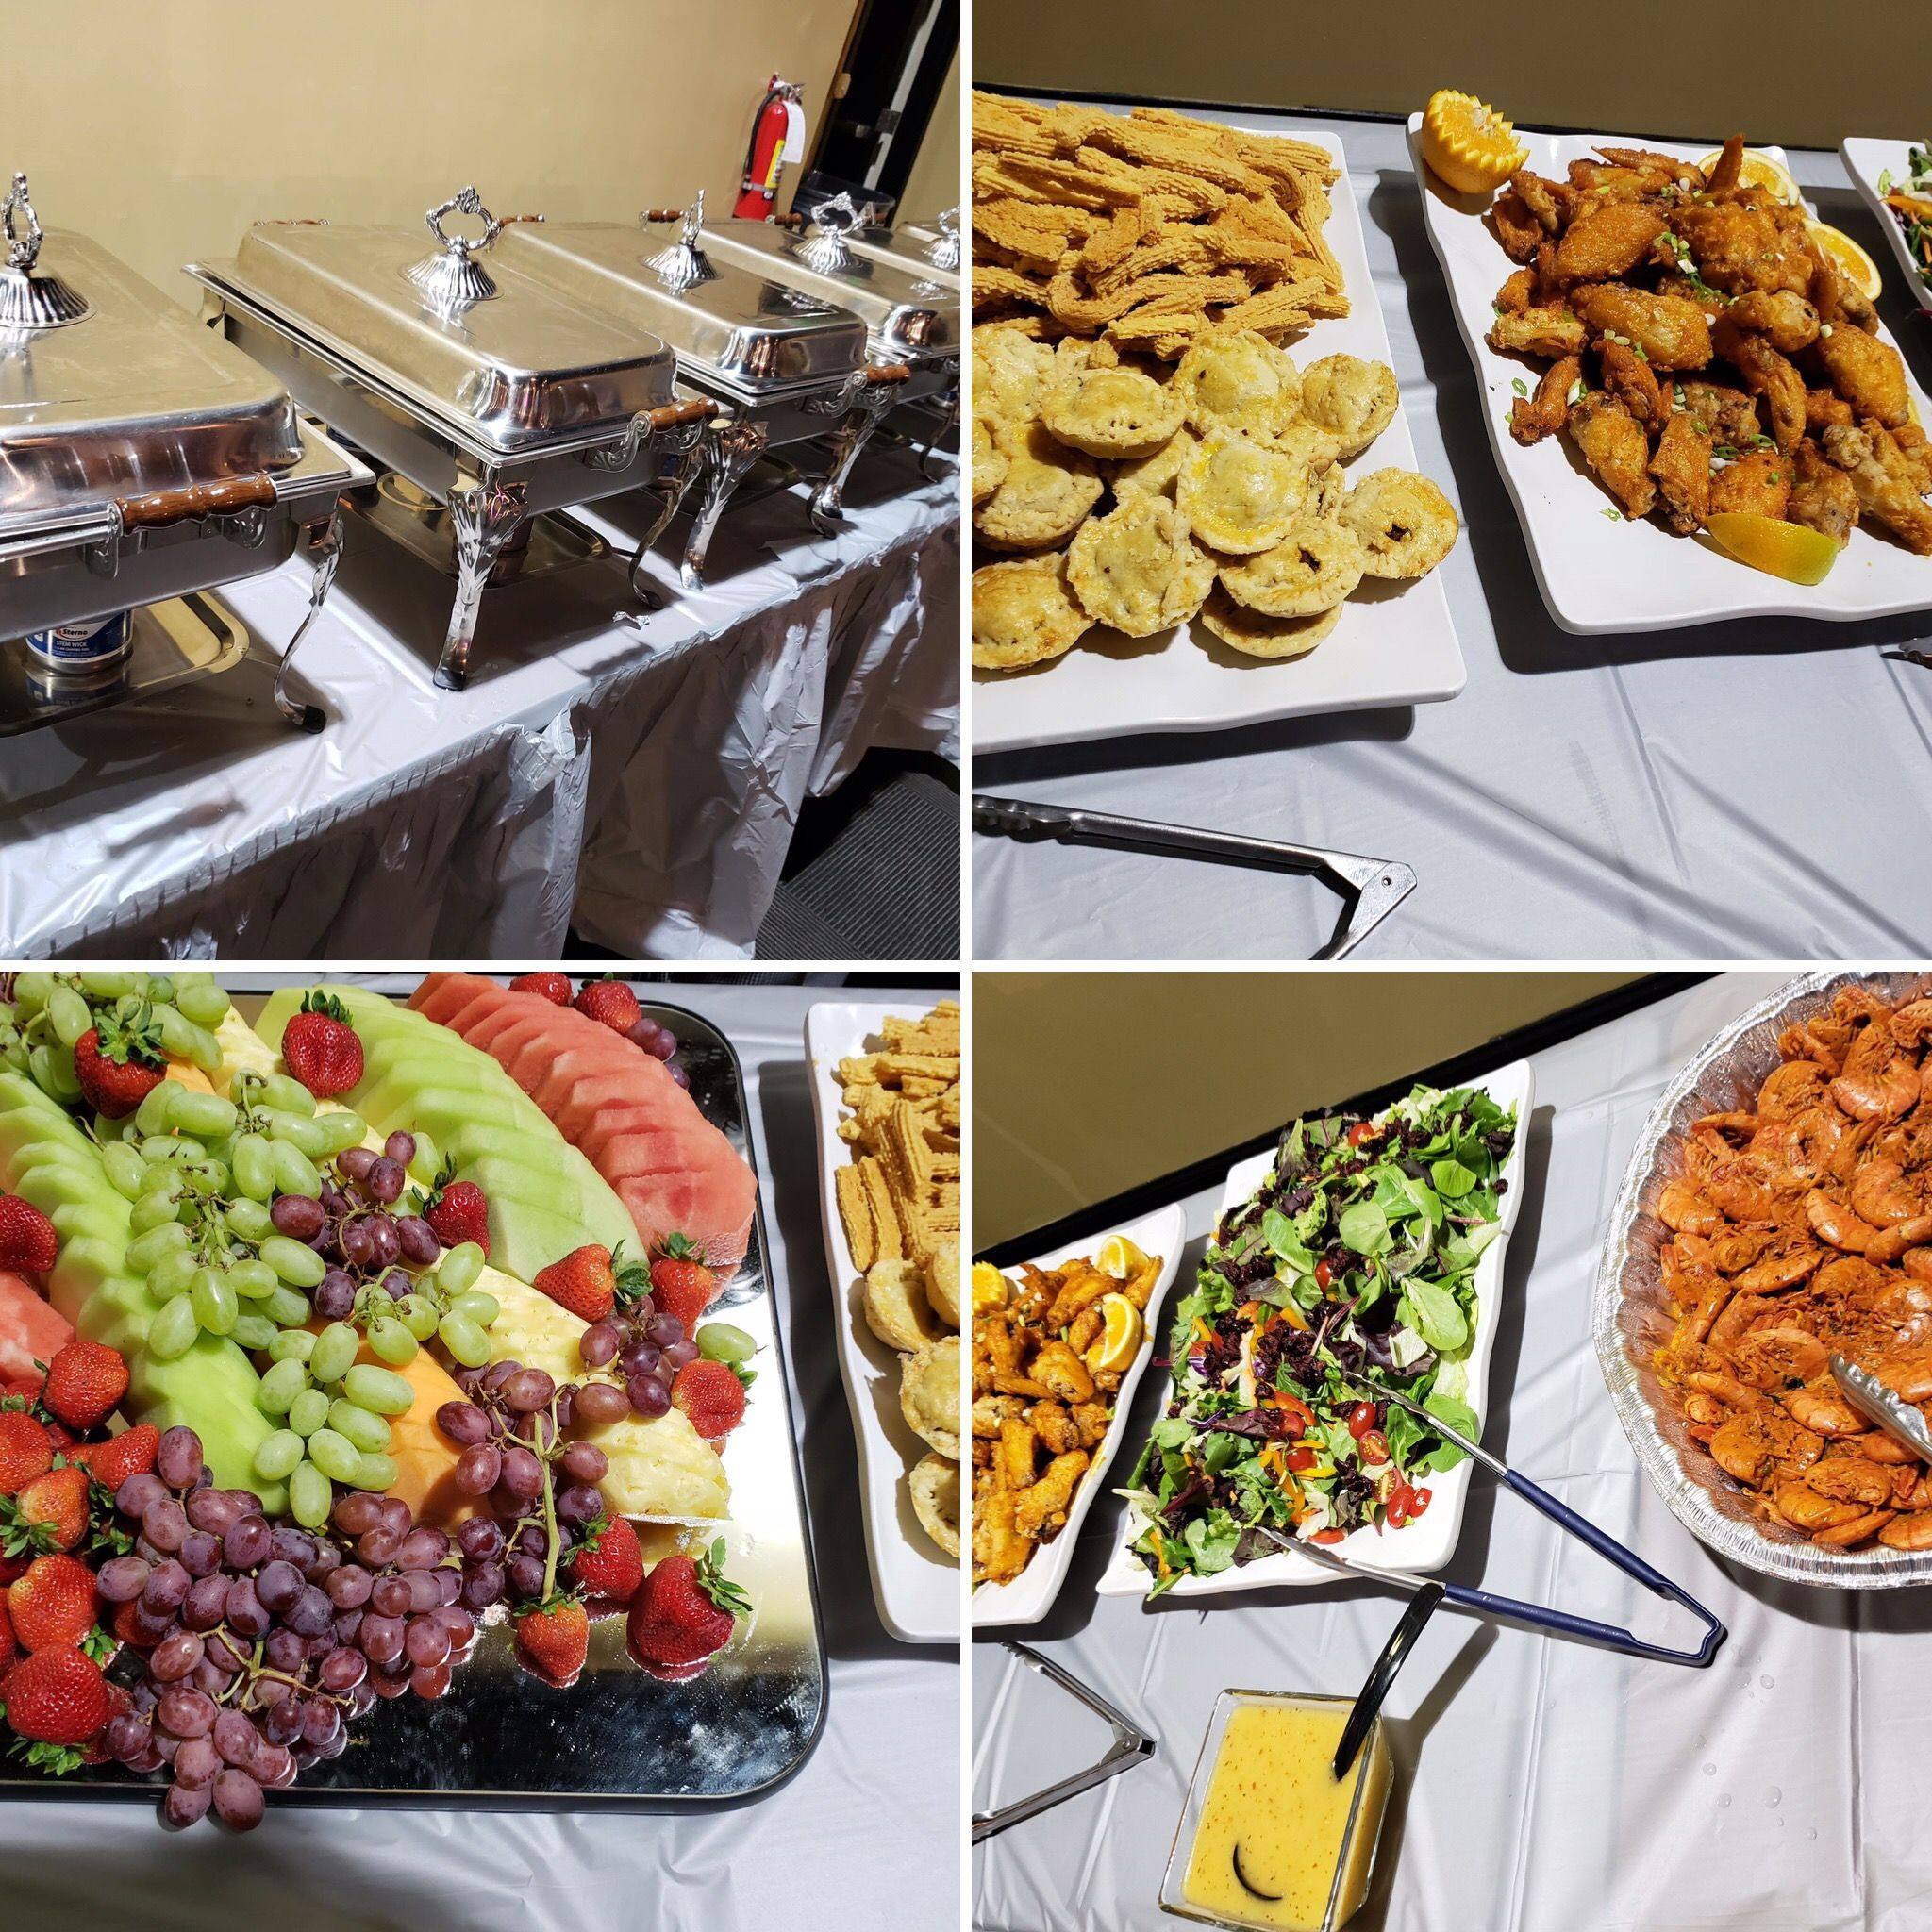 Buffet Fly Occasion Buffet Is Ready Partyplannig Eventplanning Banquethall